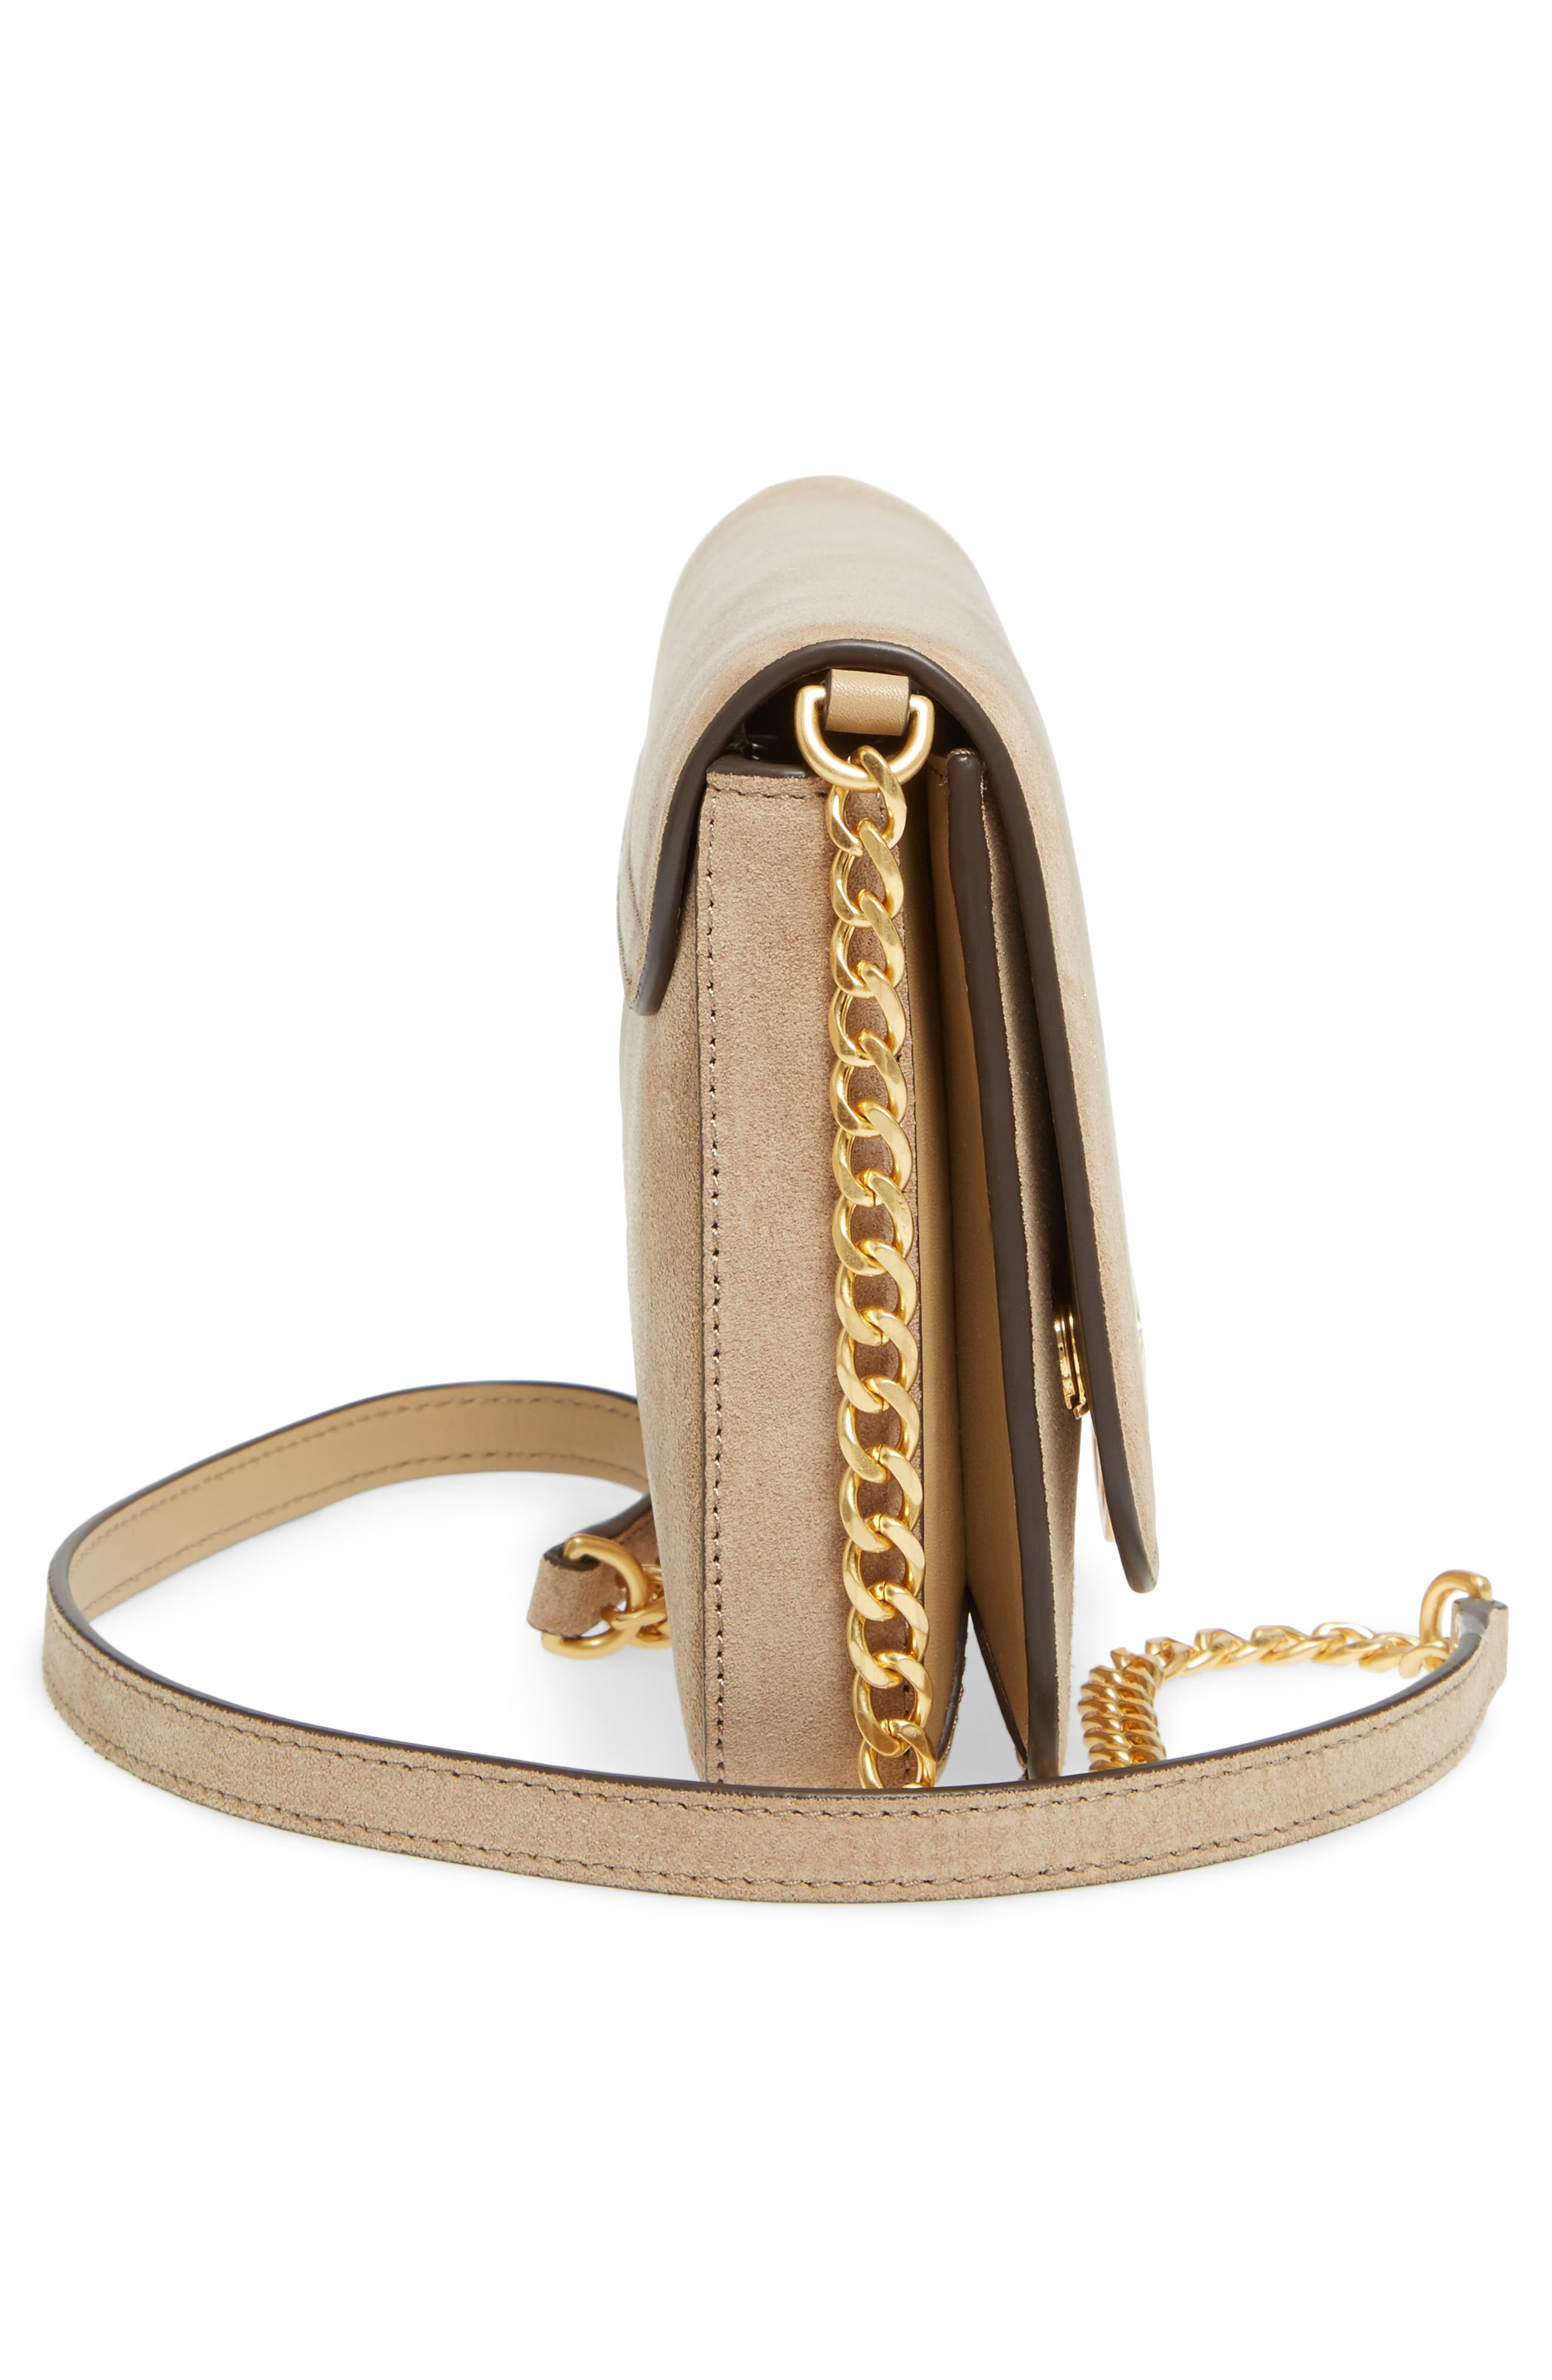 Chelsea Convertible Metallic Leather Clutch,                             Alternate thumbnail 5, color,                             710